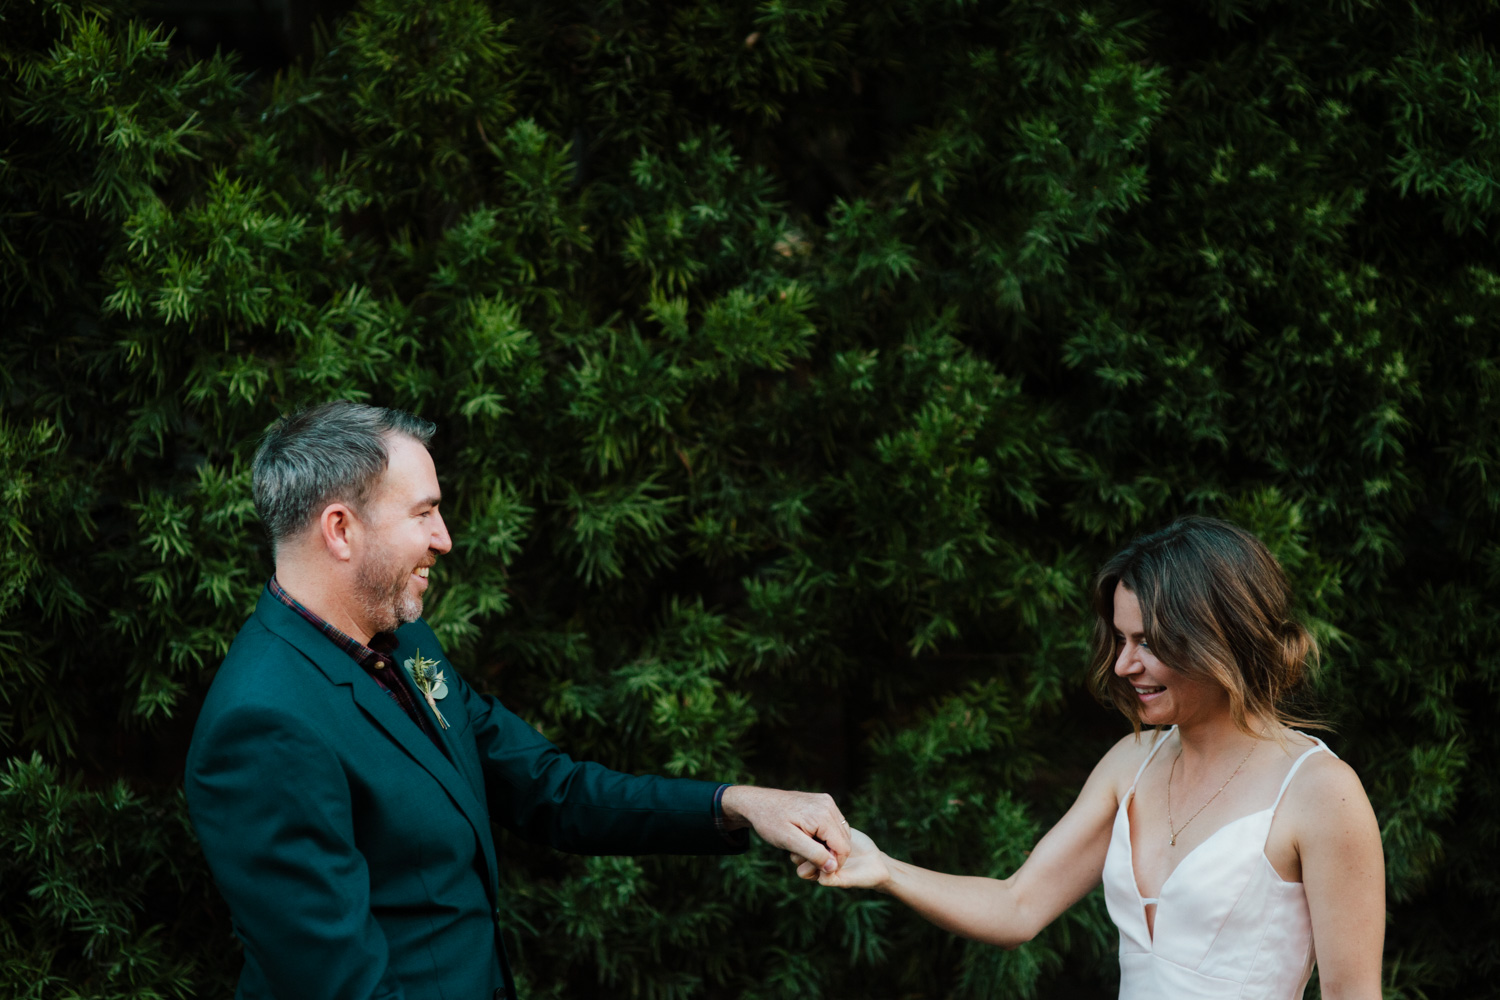 Riverside County Wedding Photographer, Five Crowns - The Gathering Season x weareleoandkat 077.JPG